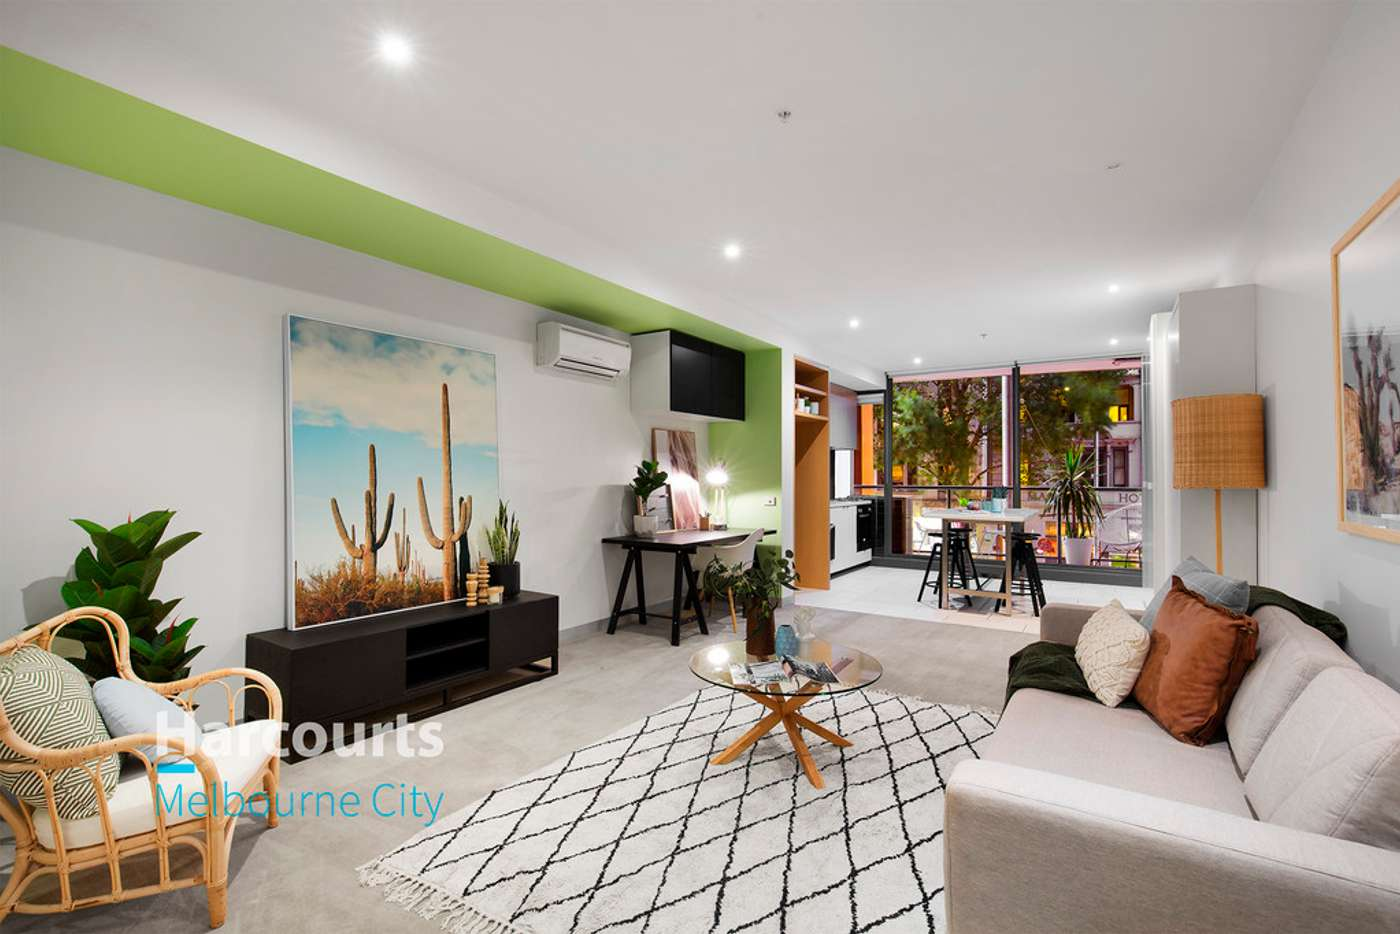 Main view of Homely apartment listing, 107/565 Flinders Street, Melbourne VIC 3000